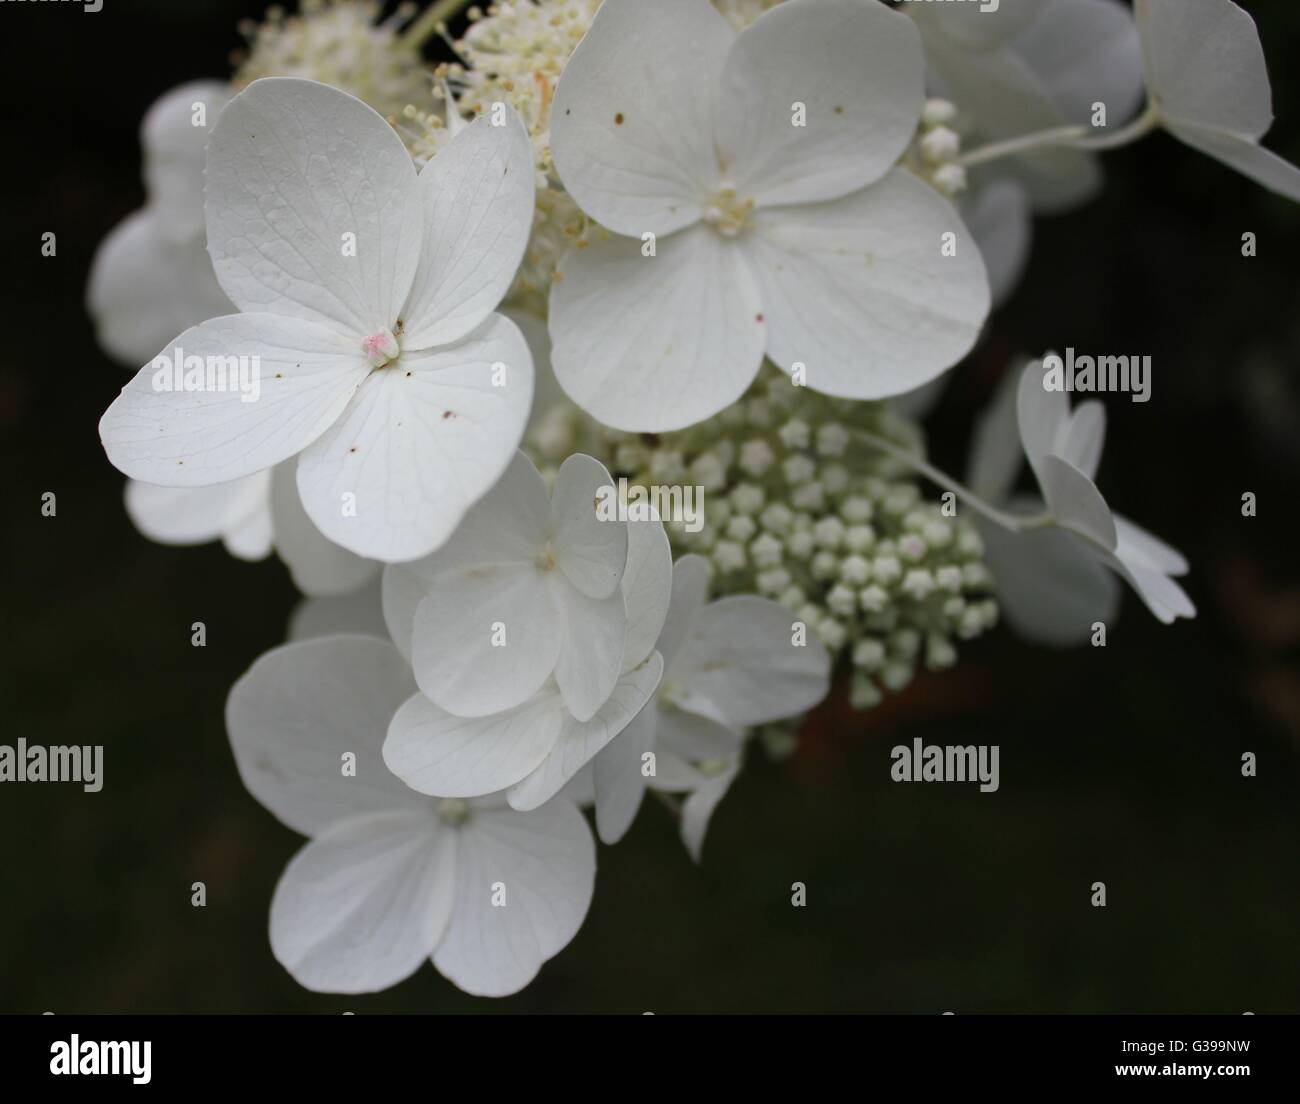 Close Up Of White Hydrangea Flower With Black Background Stock Photo